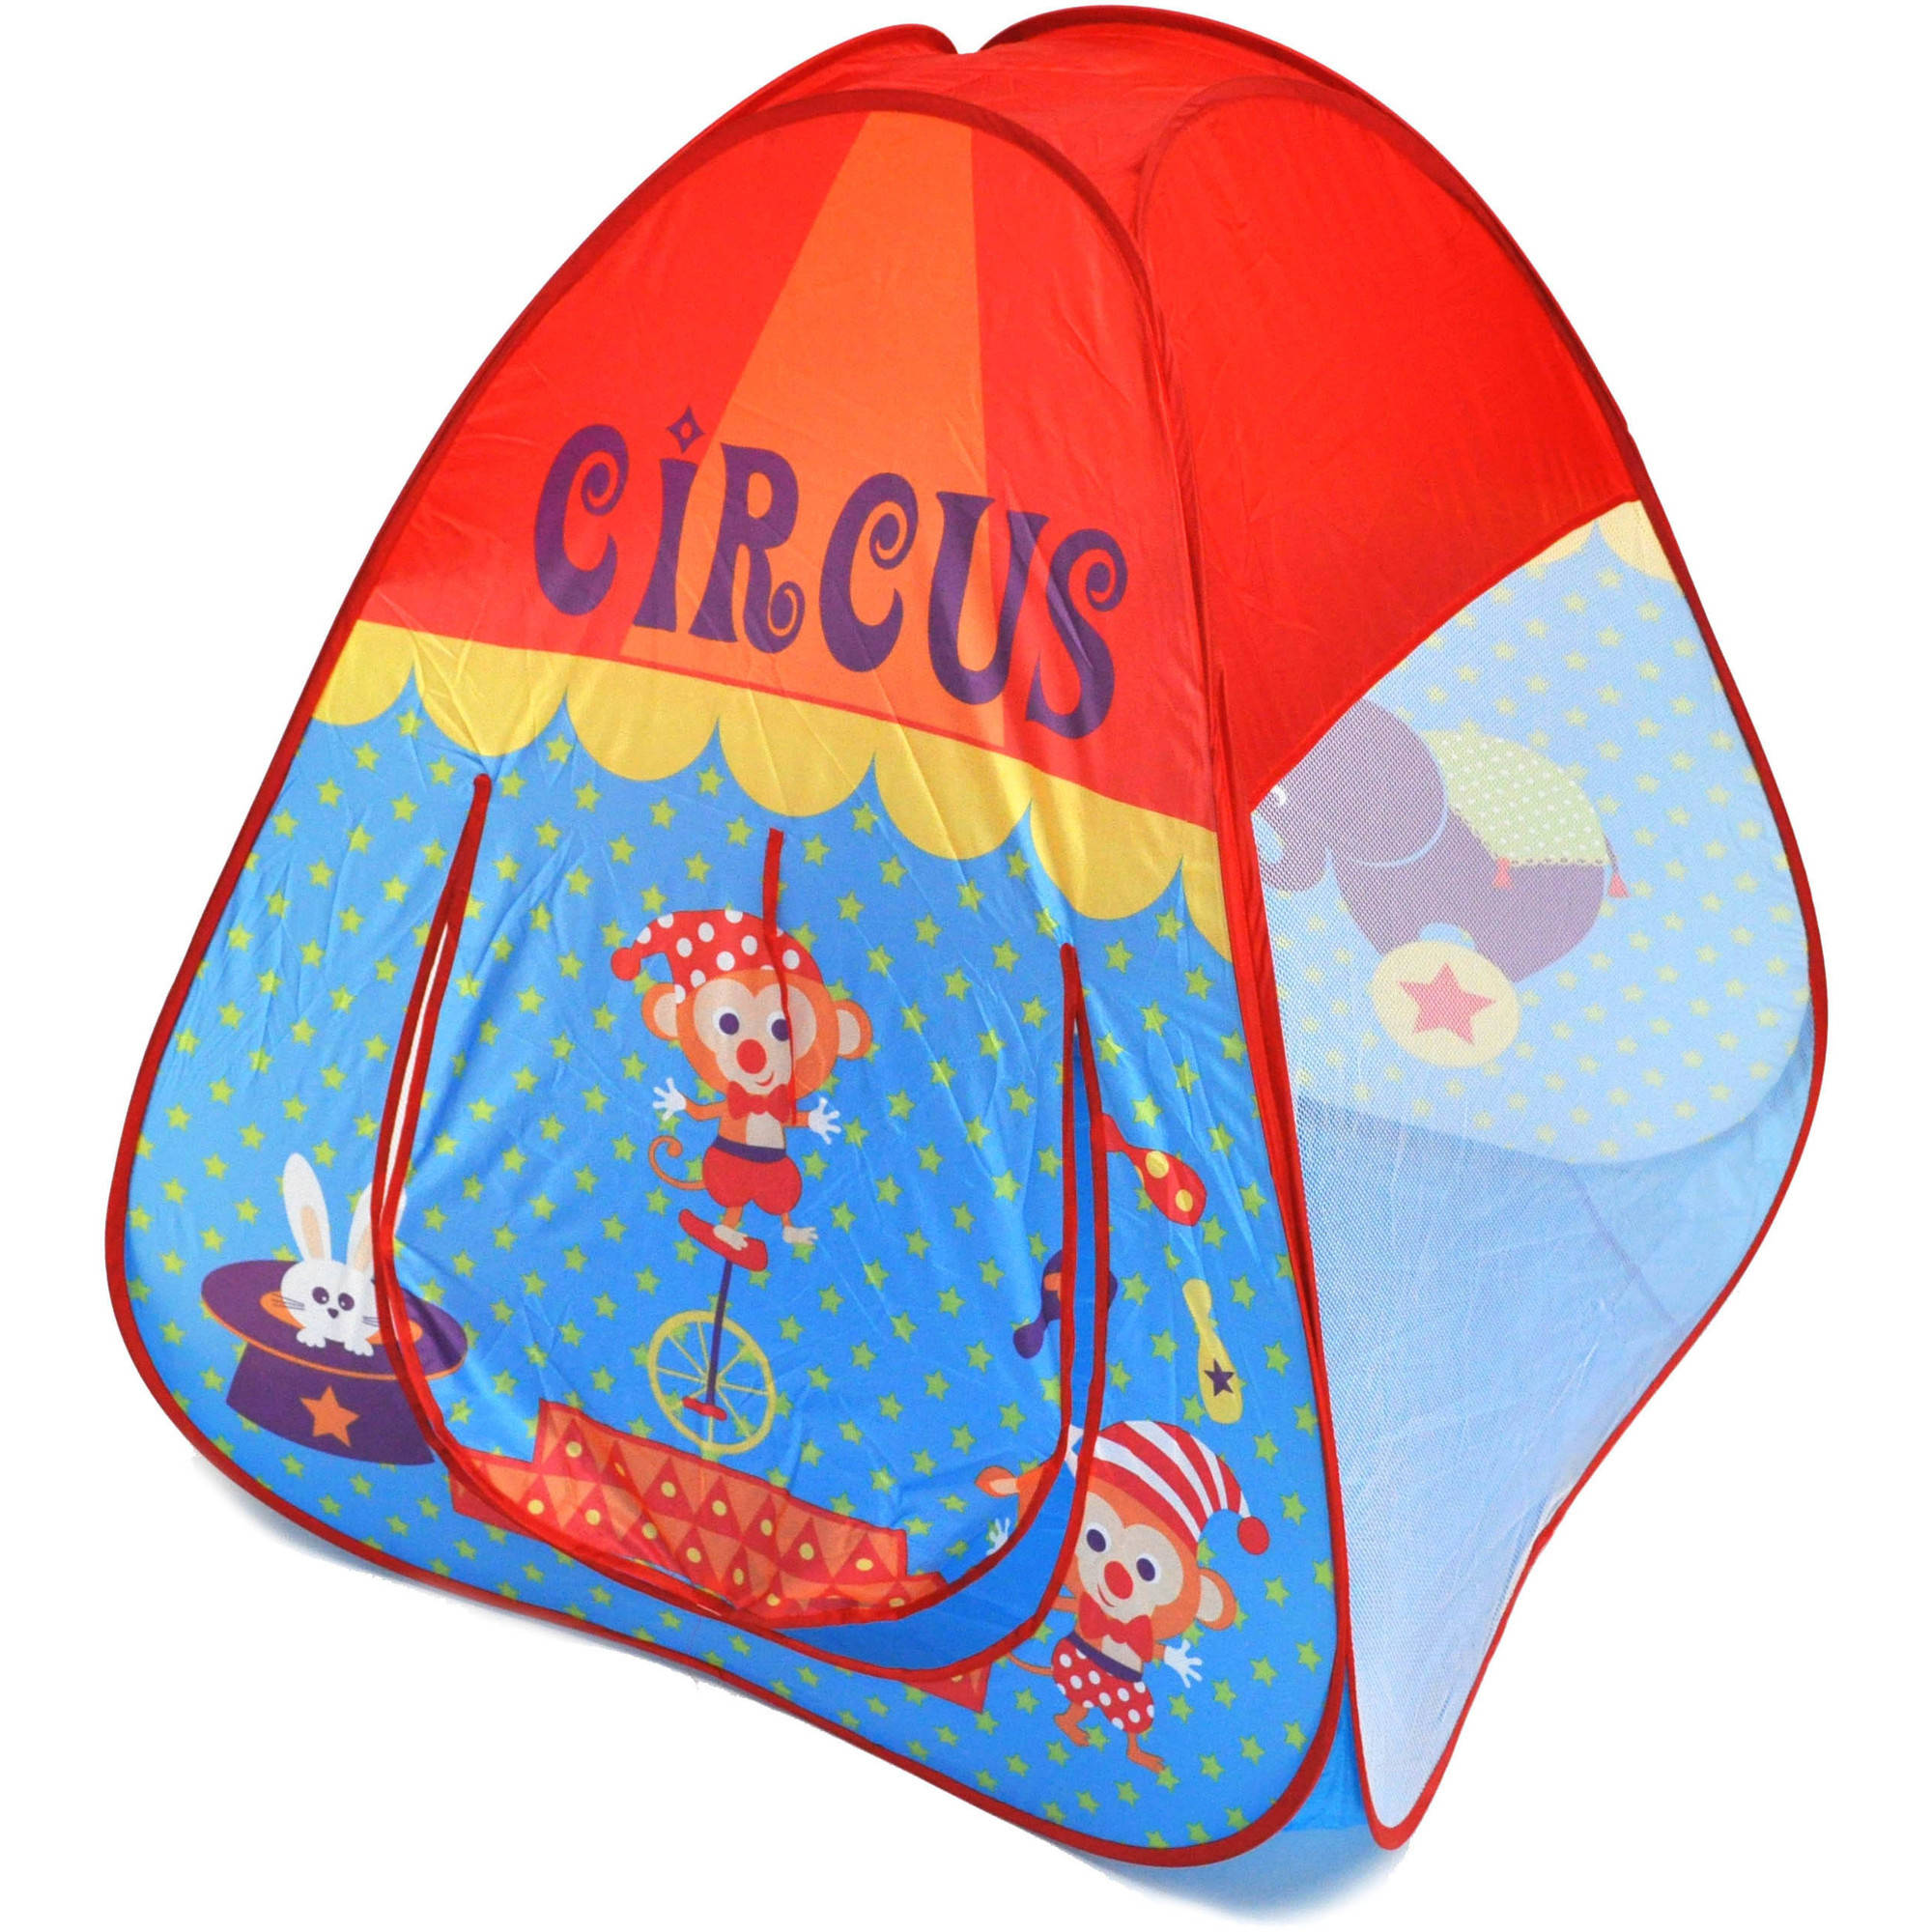 Circus Theme Twist Play Tent House for Kids with Safety Meshing for Child Visibility and Tote Bag